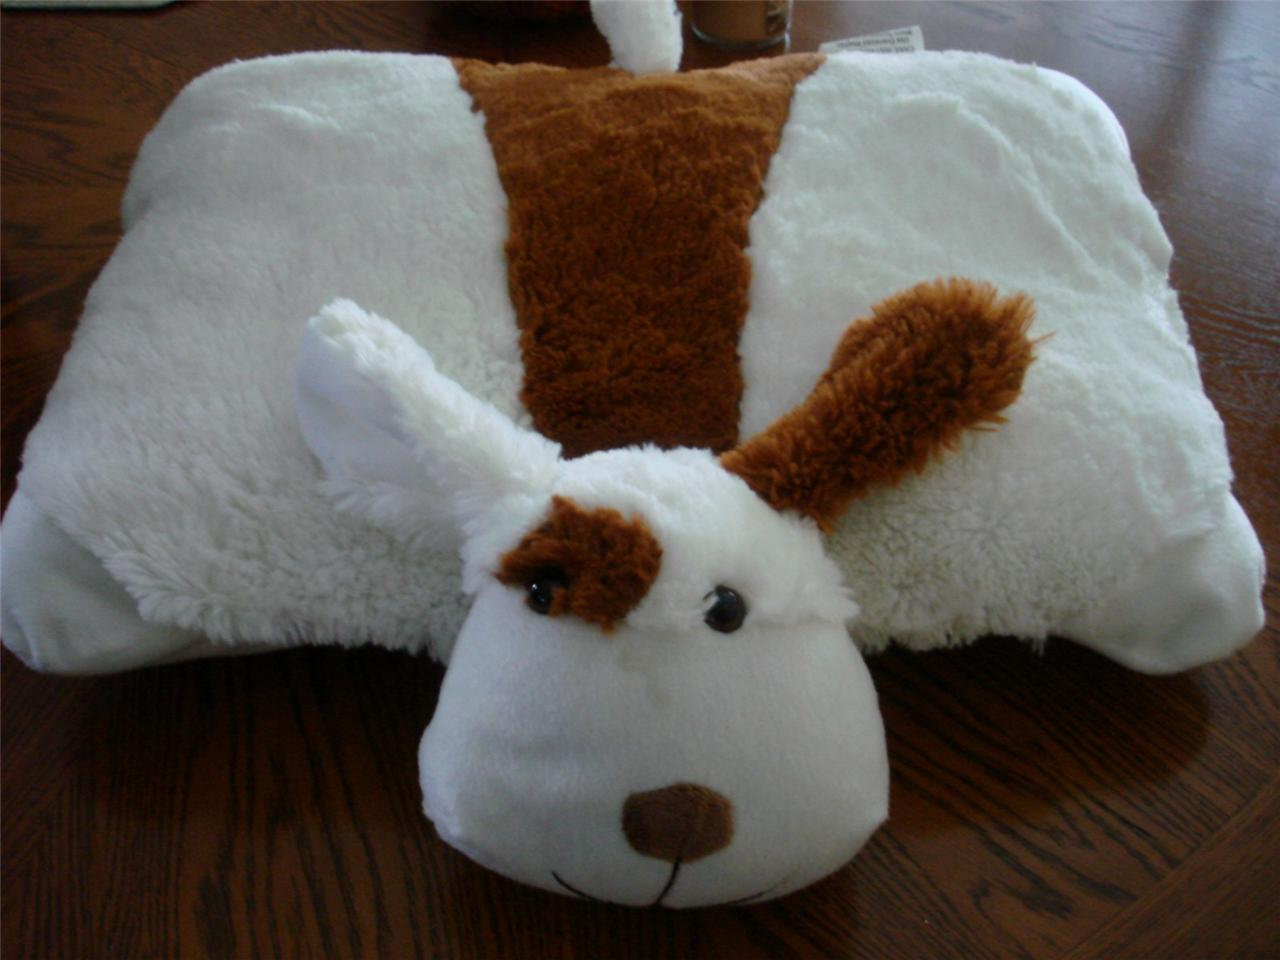 Animal Pillow Chum Dog : PUPPY DOG PILLOW CHUM PET STUFFED ANIMAL LARGE 18 PILLOW PAL eBay